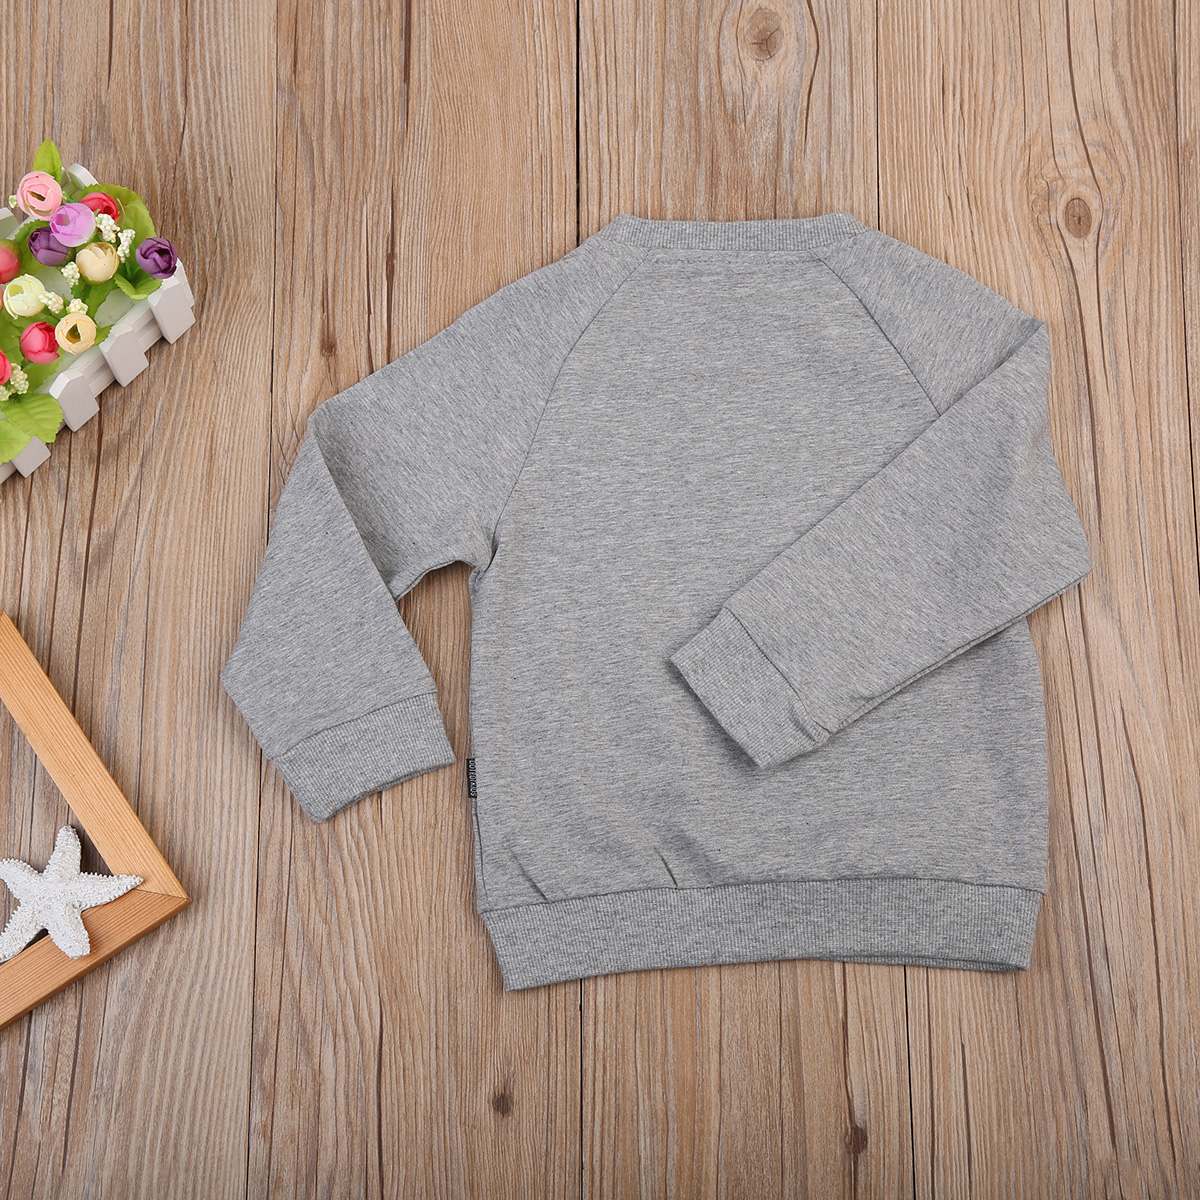 Autumn-Winter-Toddler-Long-Sleeve-Baby-Boy-Girl-Pullover-Warm-Hoodies-Sweatshirt-Clothes-Tops-4